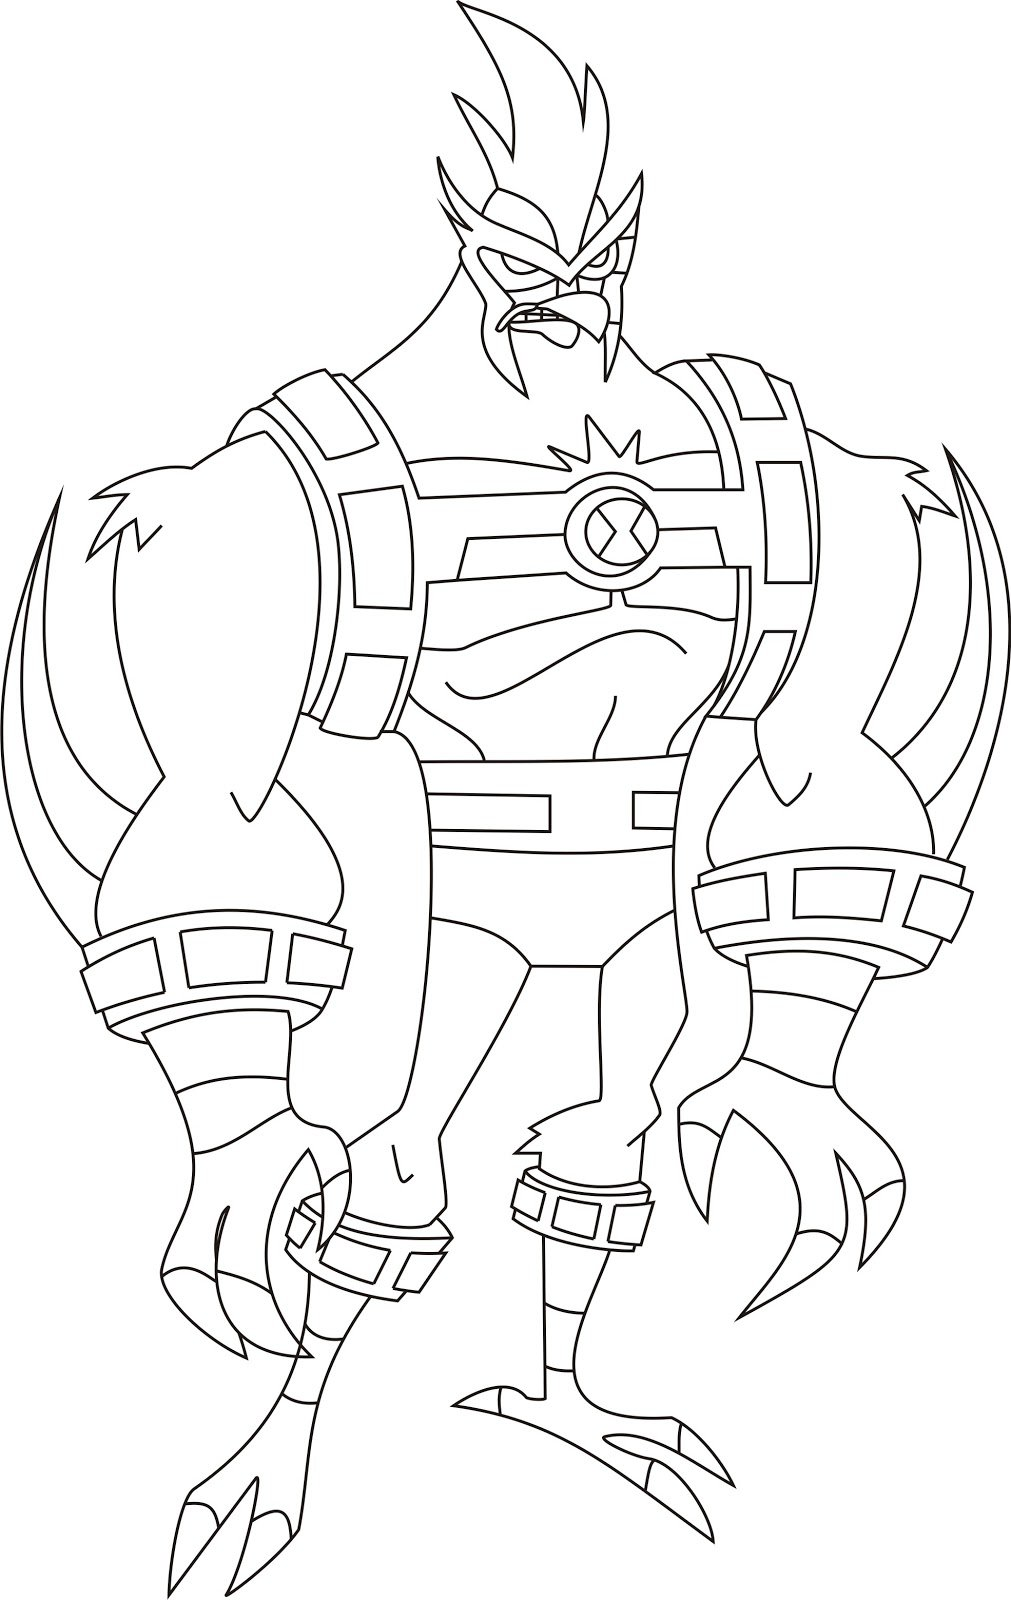 Colouring in pages ben 10 -  Ben 10 Para Colorir Ben 10 Colouring Page